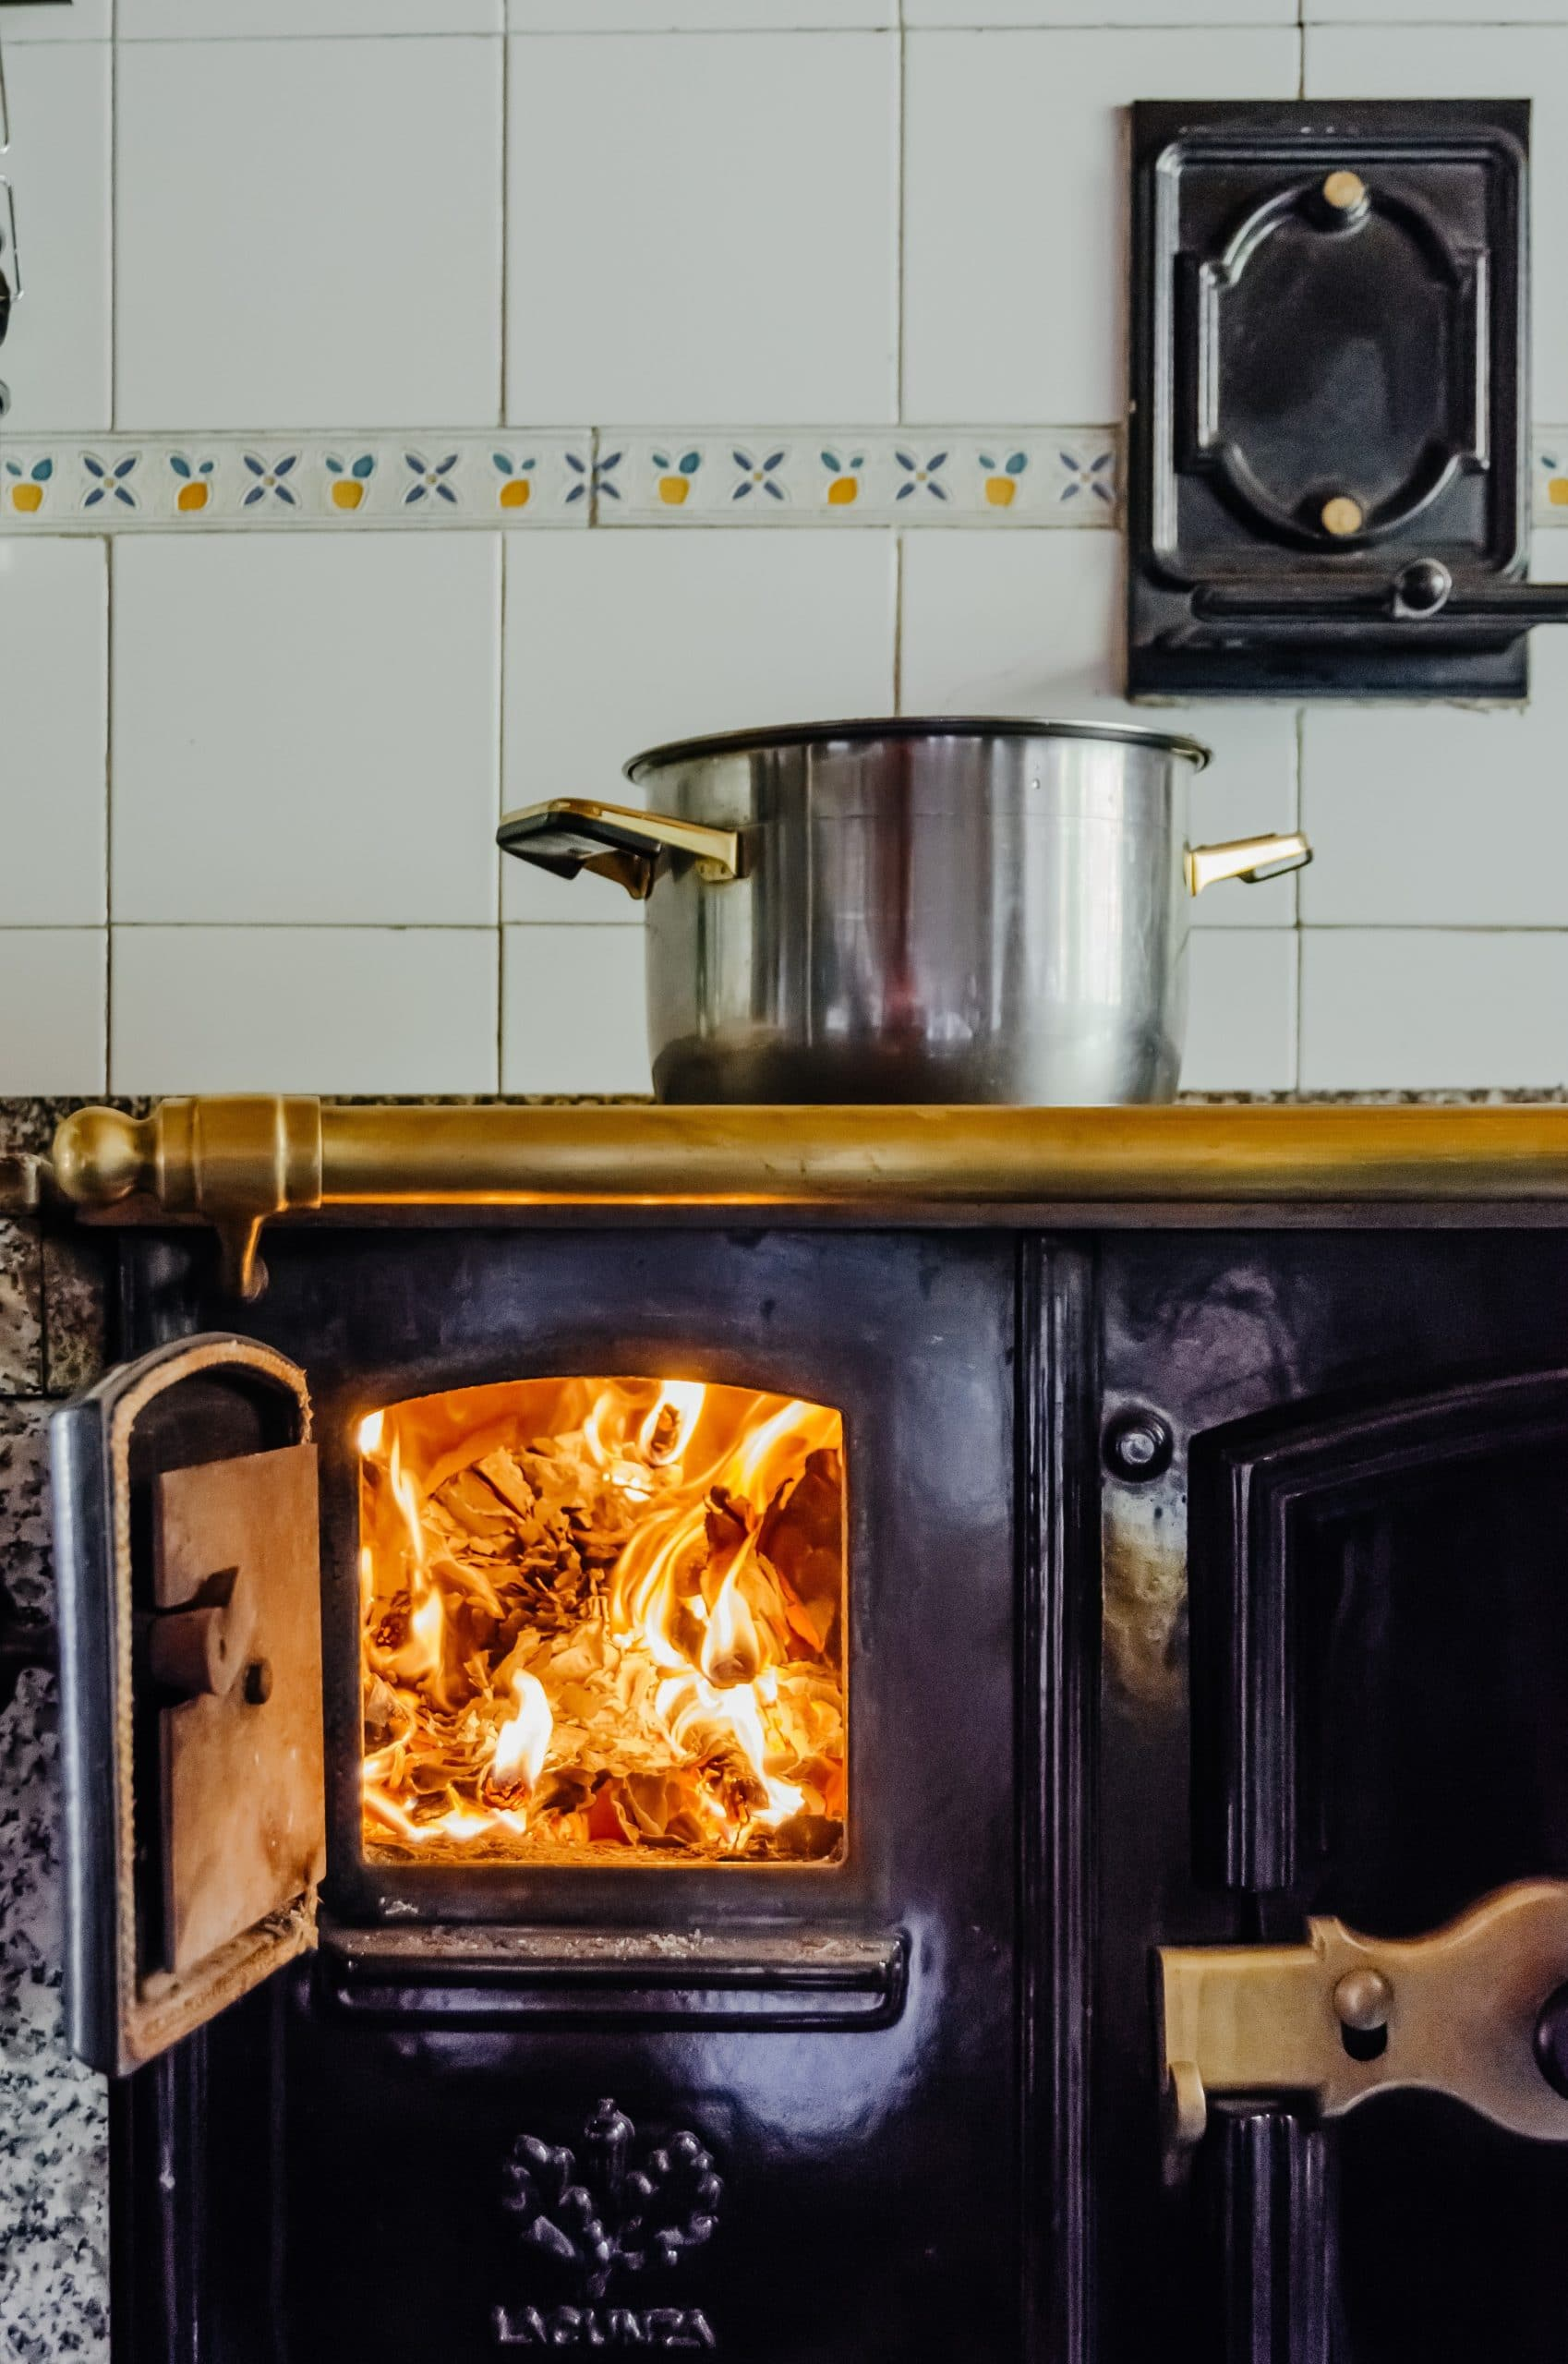 How to clean burnt-on grease from glass top stove